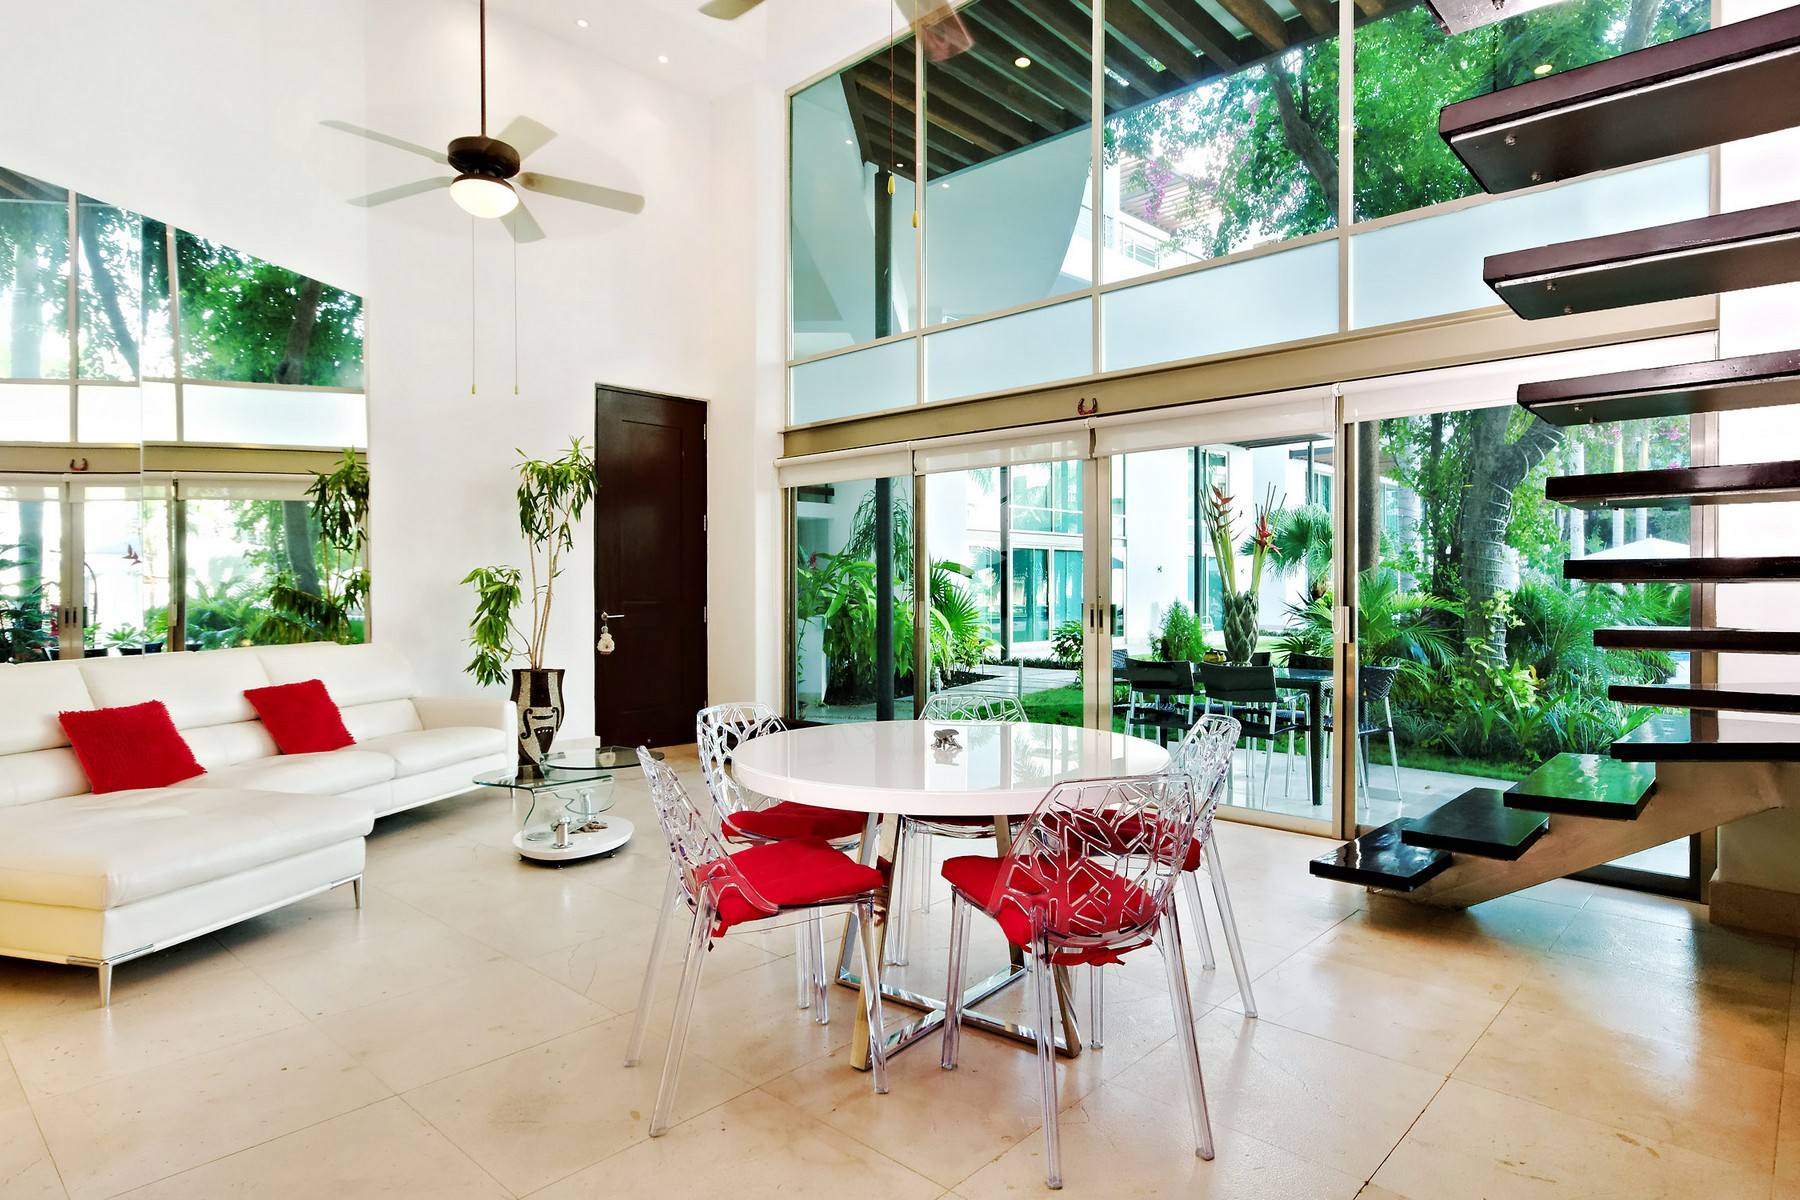 Căn hộ vì Bán tại UNIQUE 3 BEDROOM LOFT Via 38 apartment 5th Avenue North & 38th Street Playa Del Carmen, Quintana Roo, 77710 Mexico